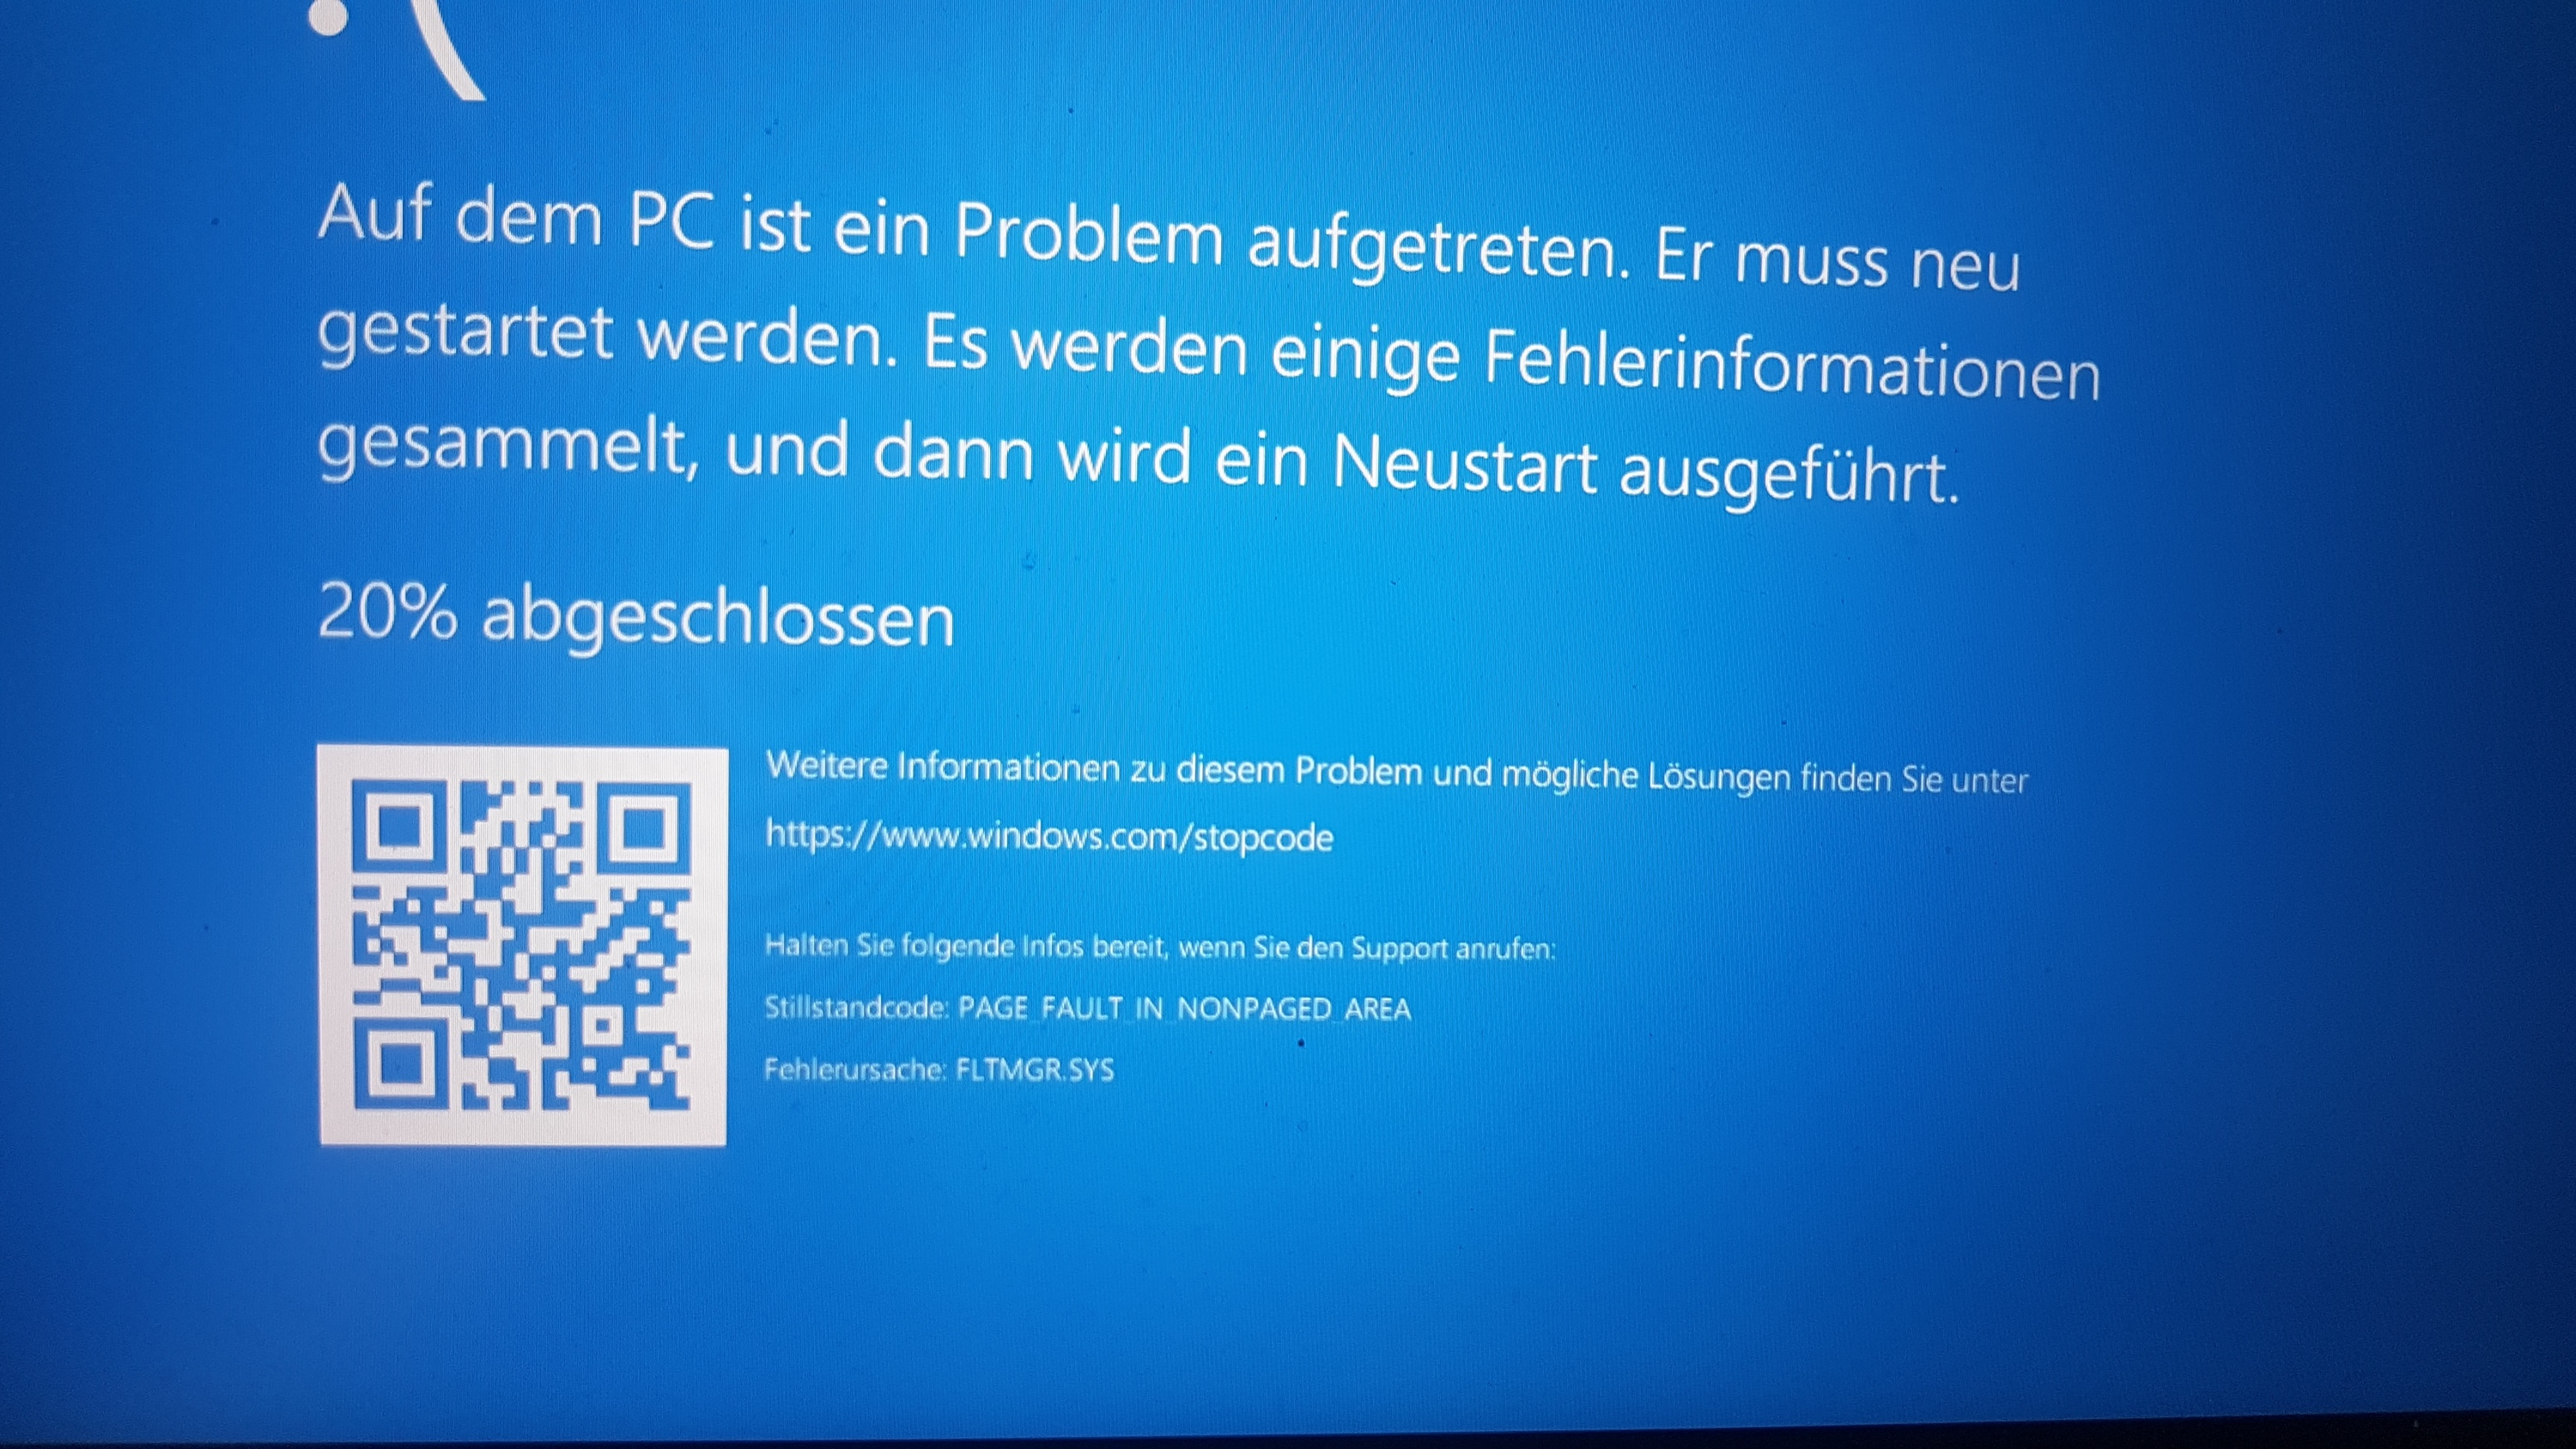 IRQL_NOT_LESS_OR_EQUAL / PAGE_FAULT_IN_NONPAGED_AREA Bluescreen nach RAM Update